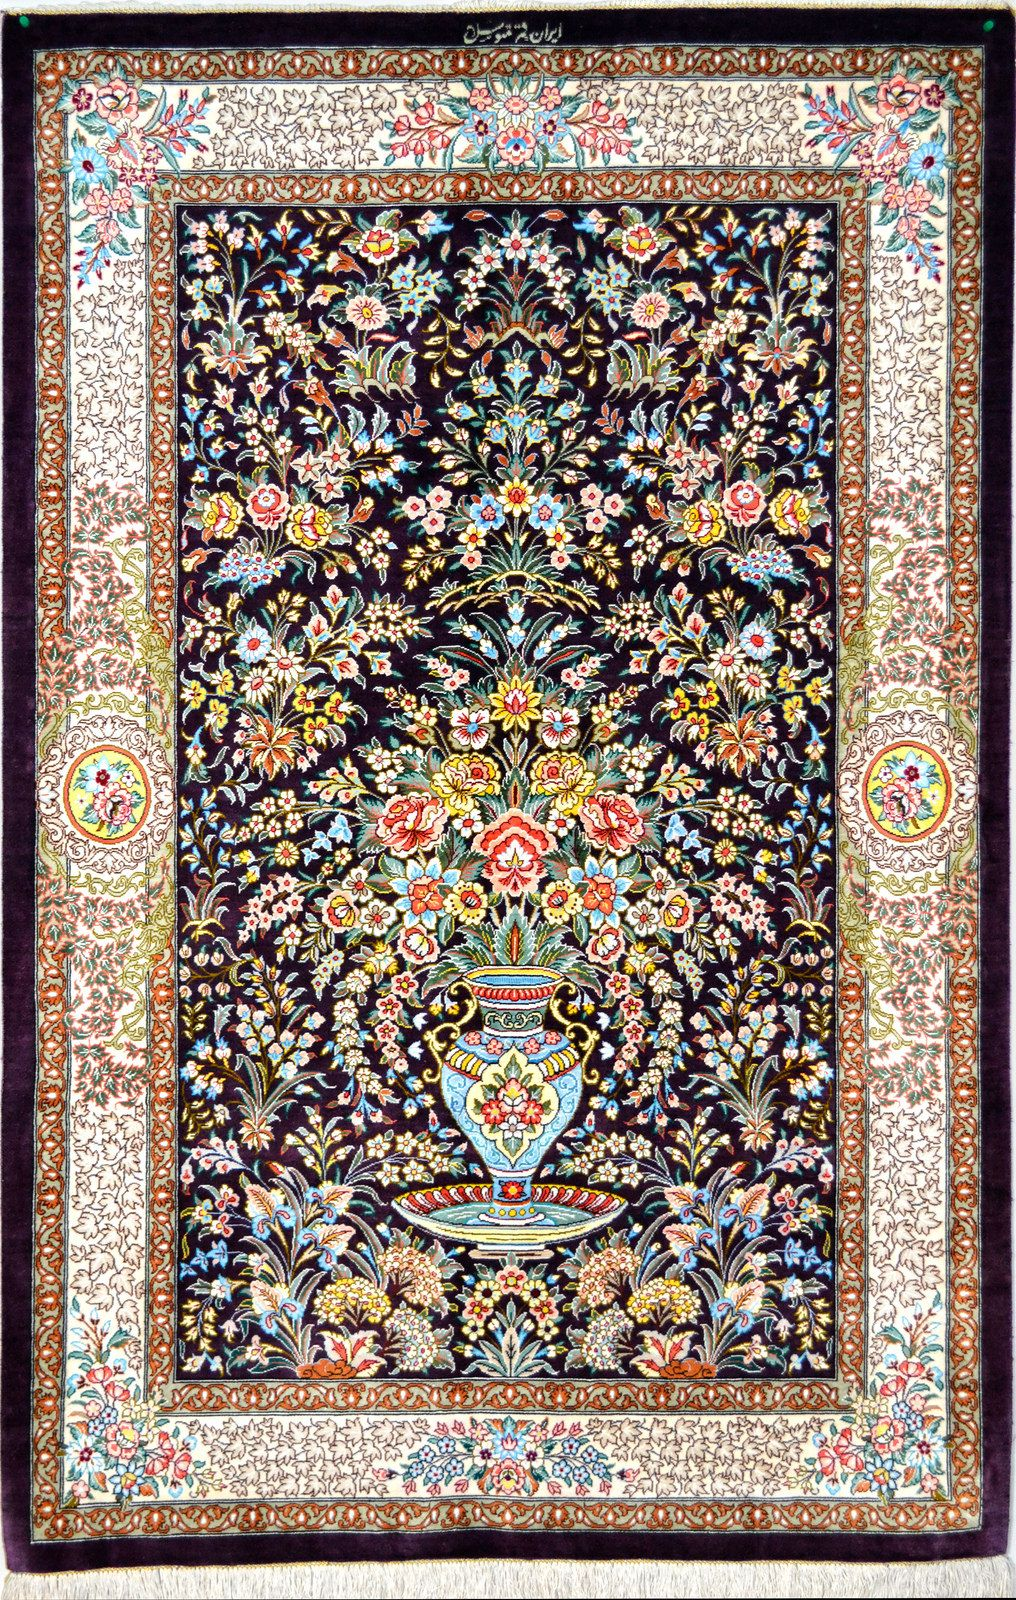 Iranian Qum Silk Persian Rugs are Great Picks for Home